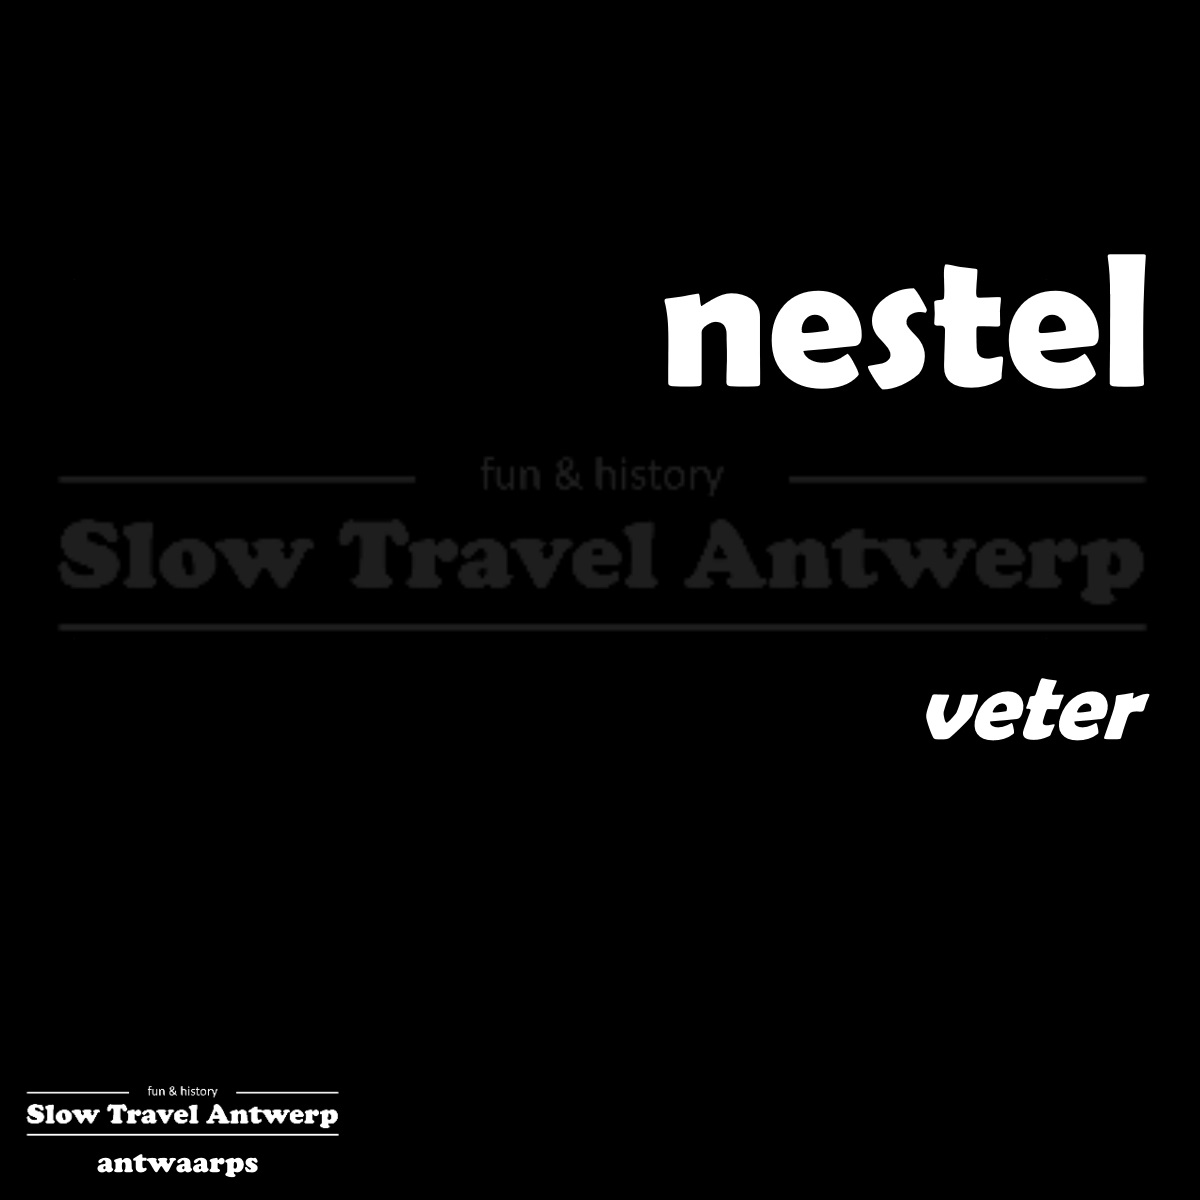 nestel – veter – shoelace